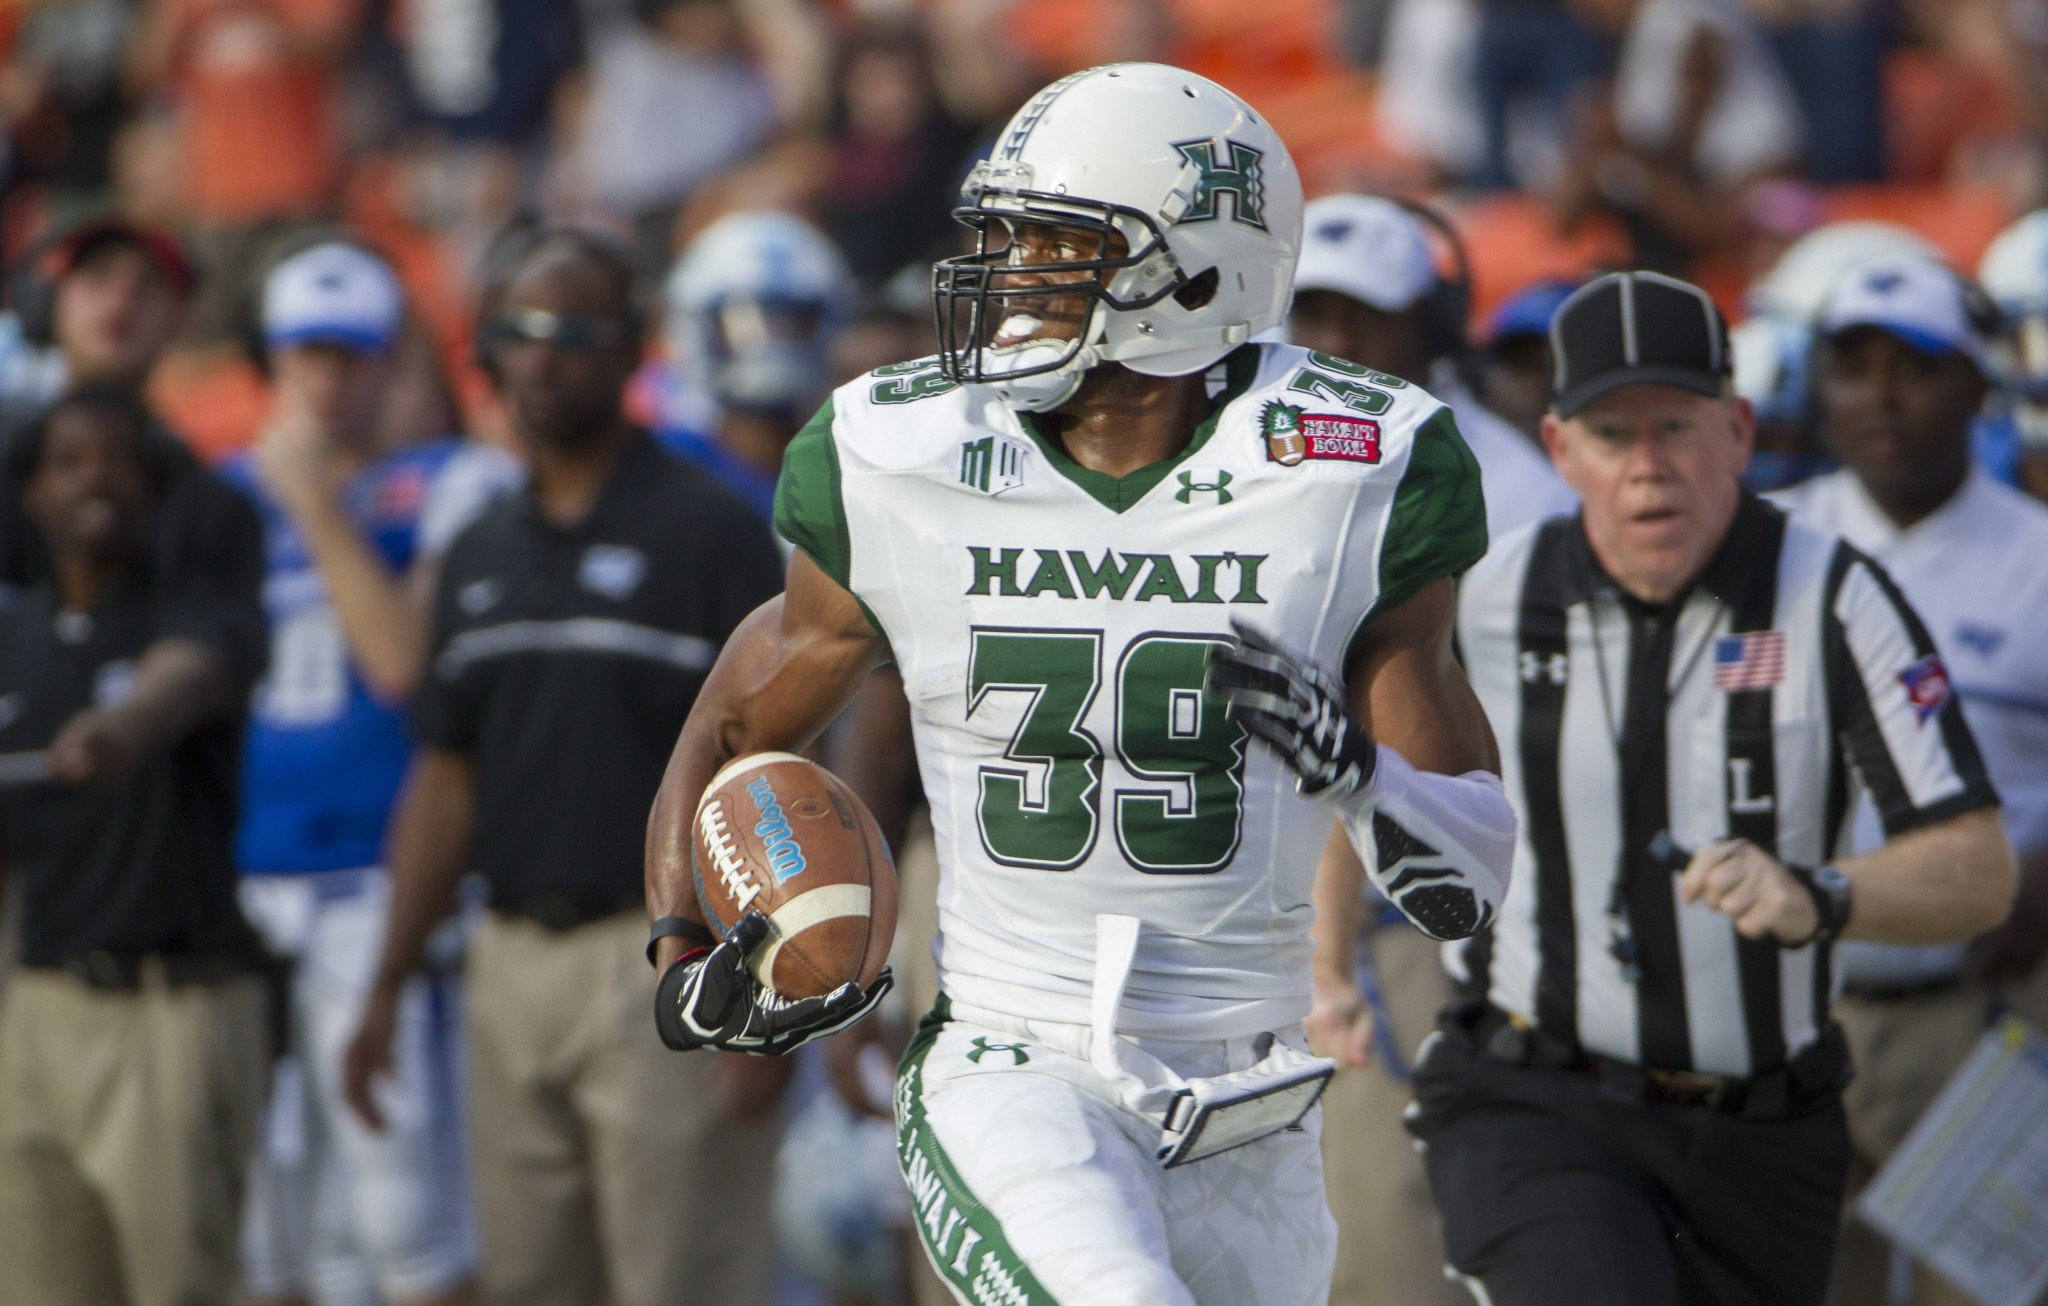 Hawaii defensive back Trayvon Henderson returned an interception for a touchdown in the win over Middle Tennessee. (AP Photo/Eugene Tanner)